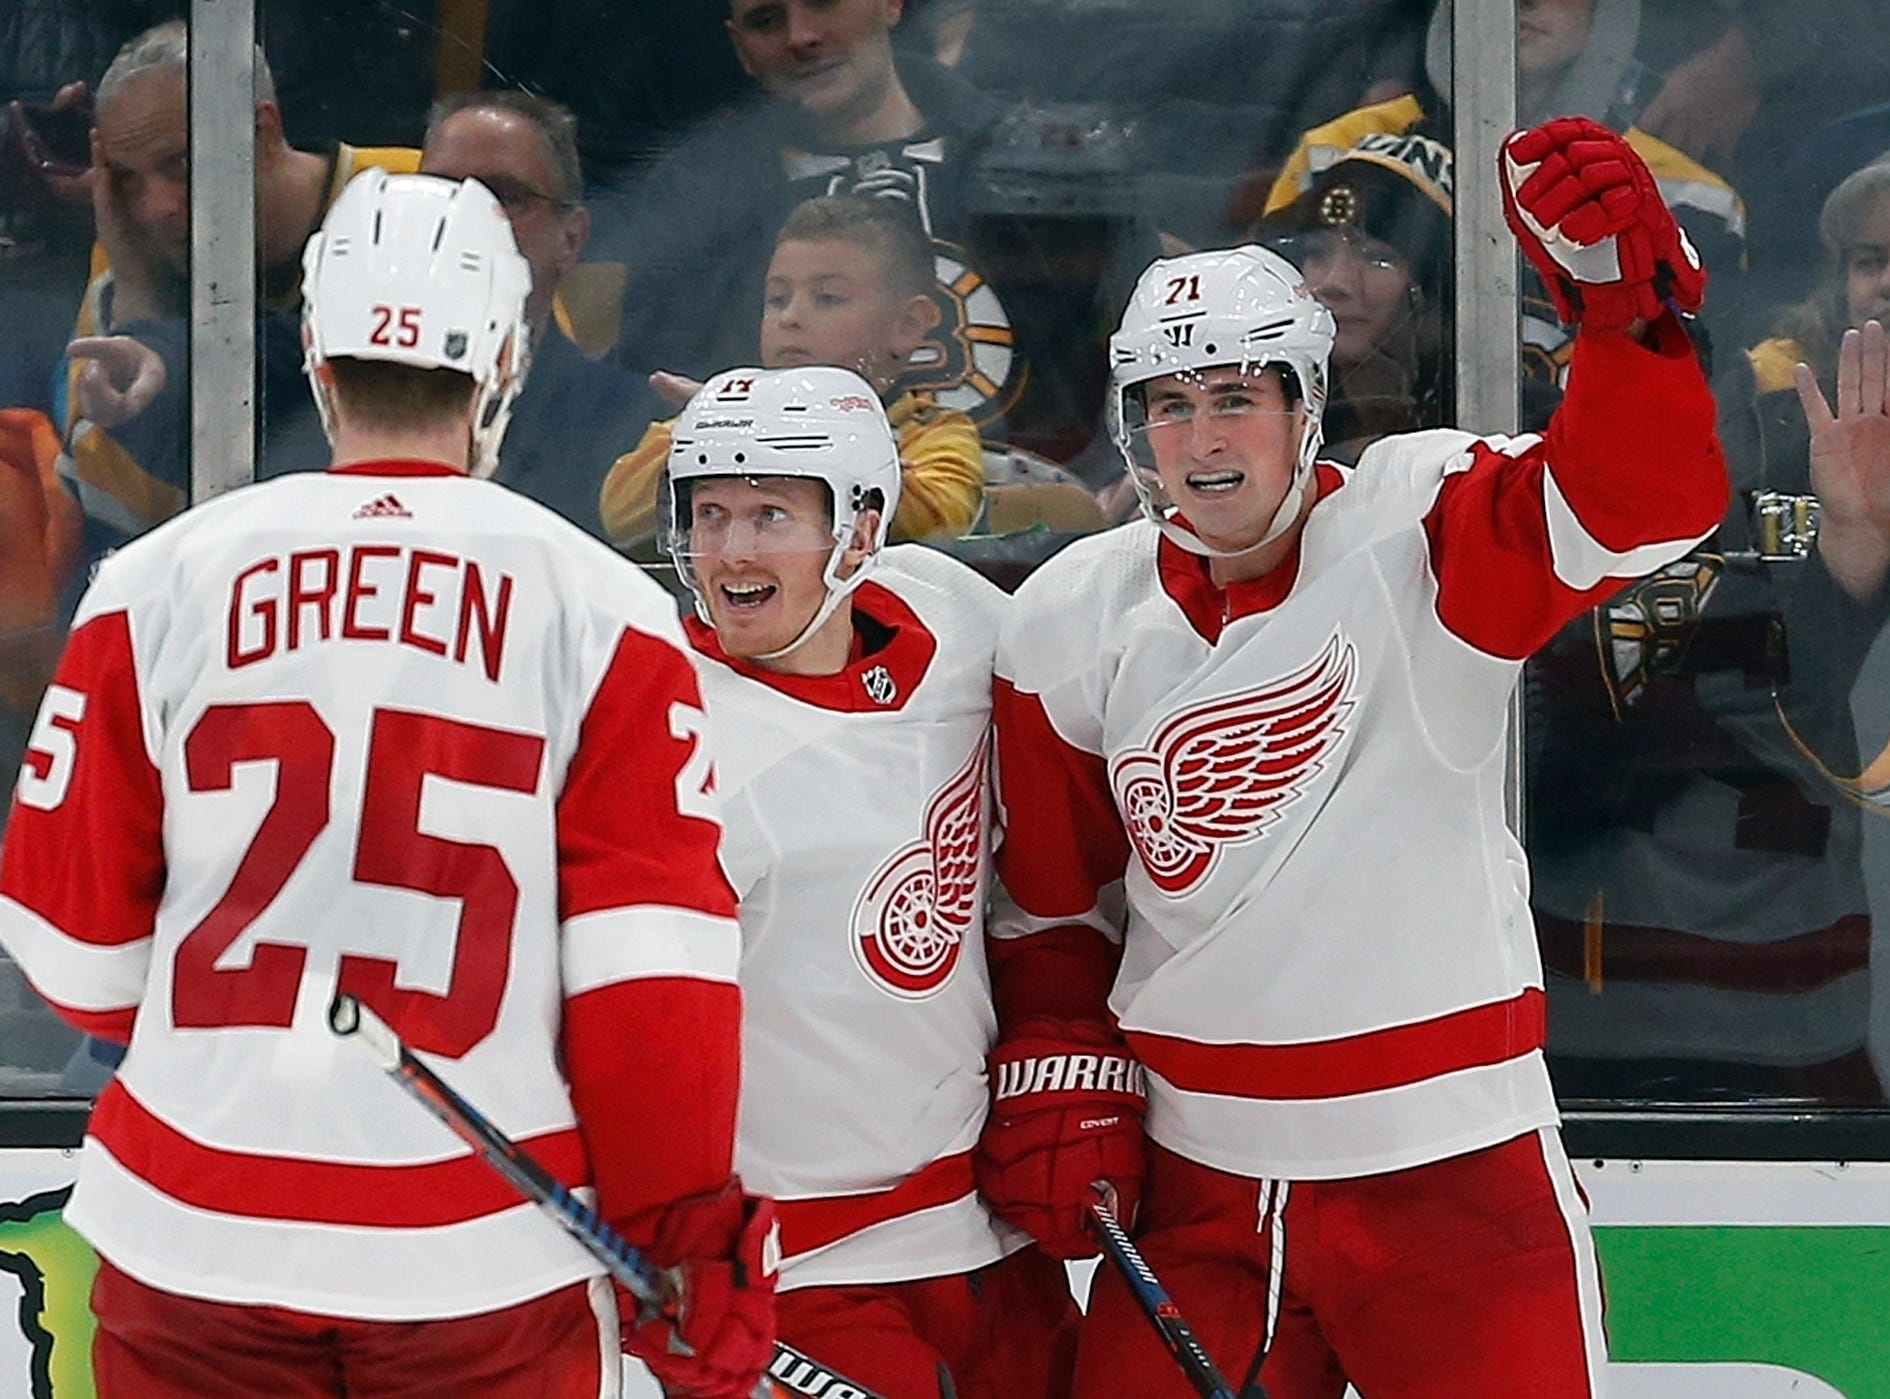 Detroit Red Wings' Dylan Larkin (71) celebrates his goal with teammates Gustav Nyquist (14) and Mike Green (25) during the second period.